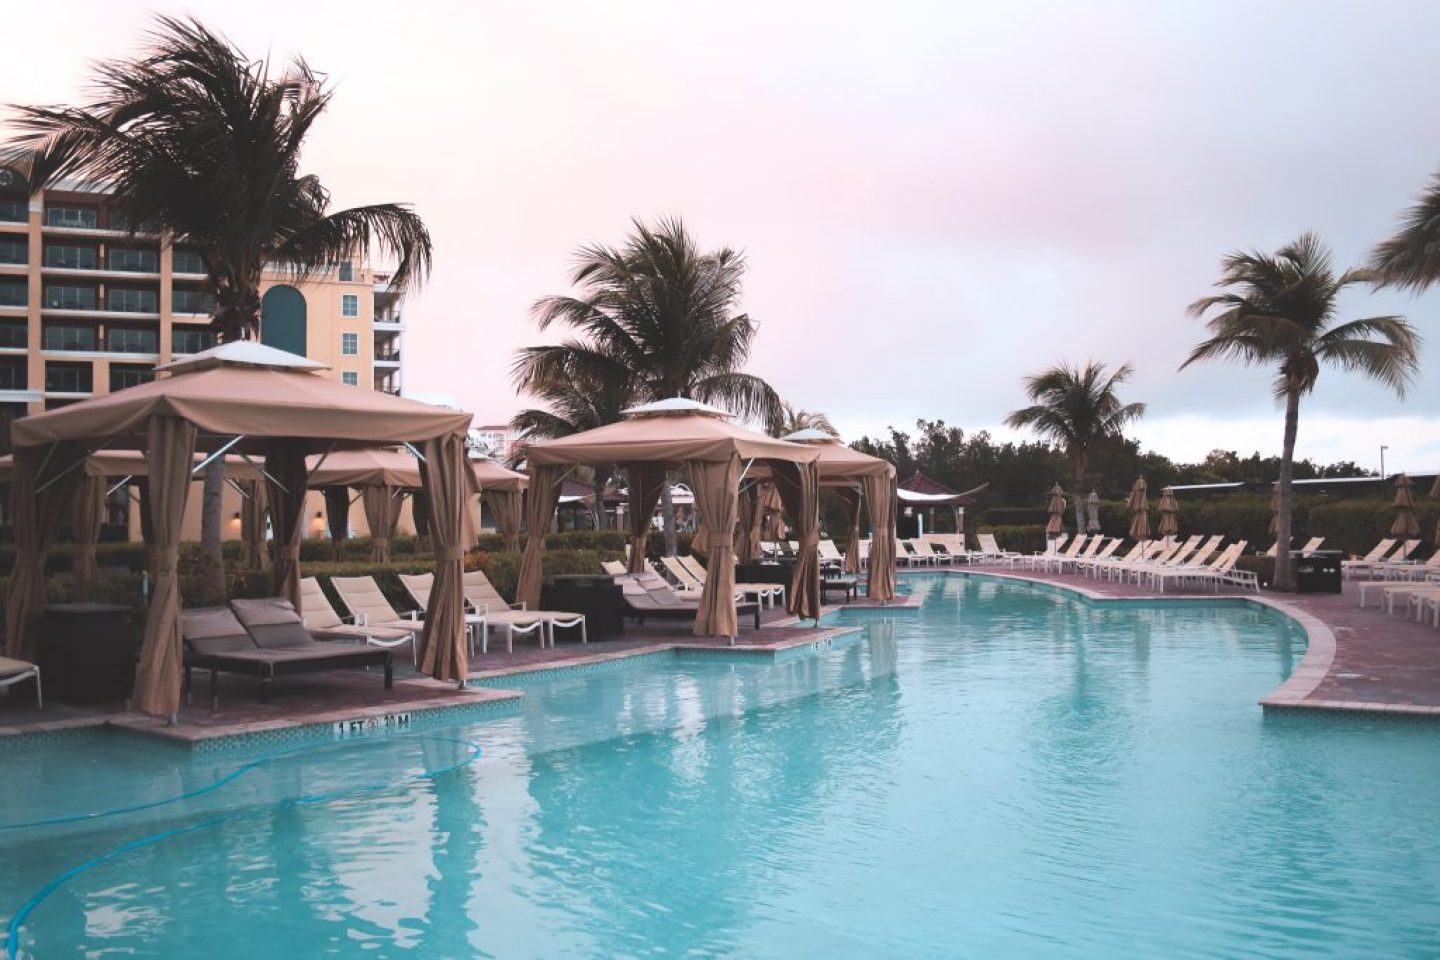 Where To Stay In Aruba: ritz carlton sunrise with a pool